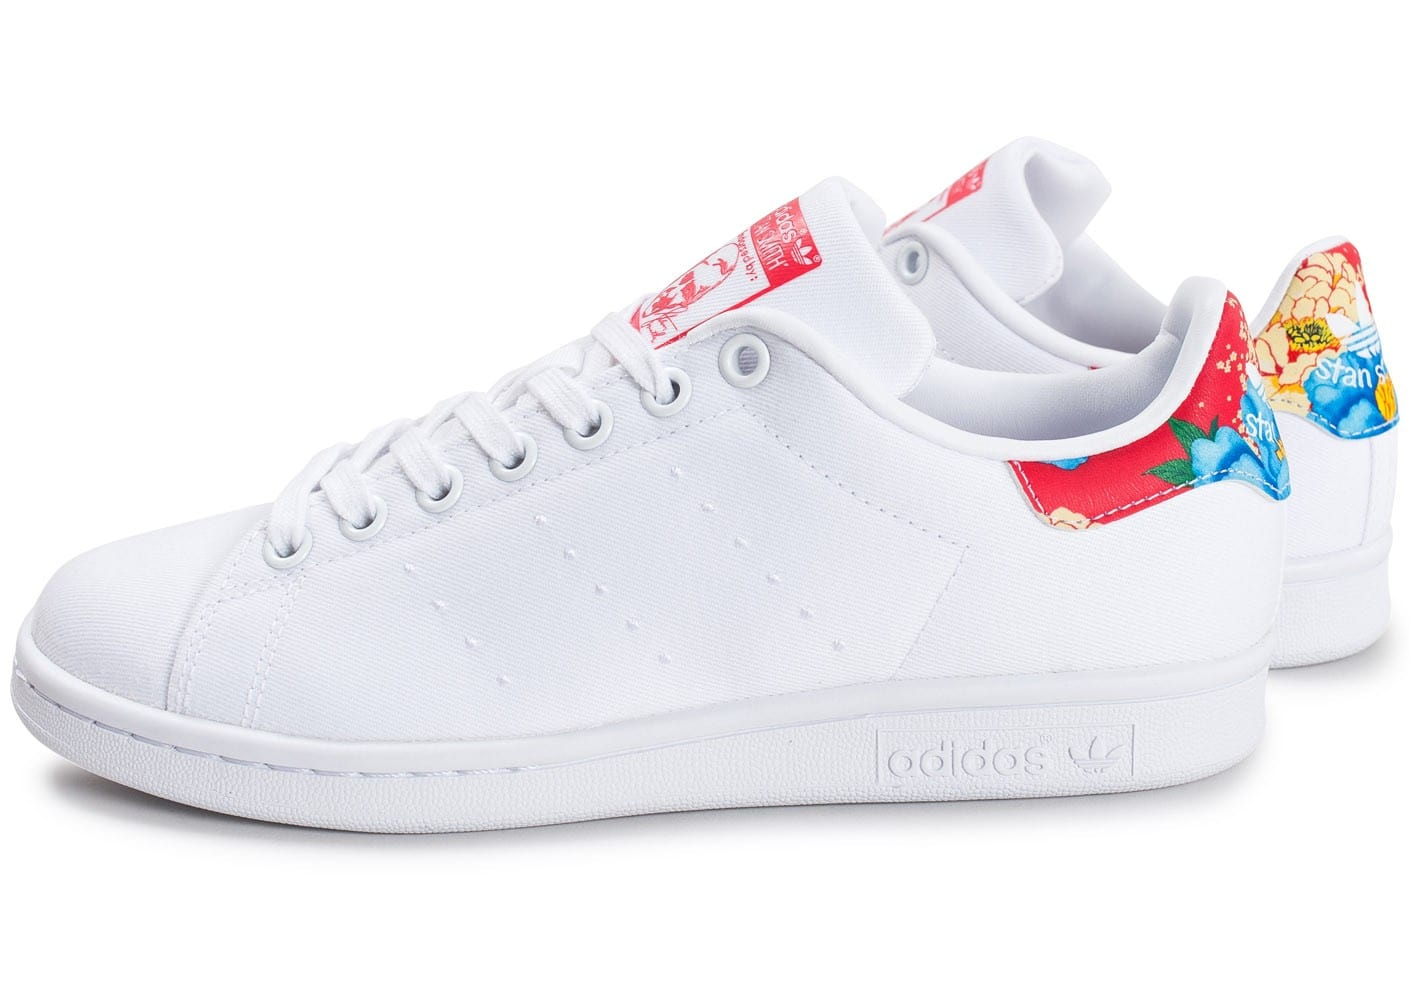 reputable site a5ae5 129aa Cliquez pour zoomer Chaussures adidas Stan Smith The Farm Company W blanche  vue extérieure ...